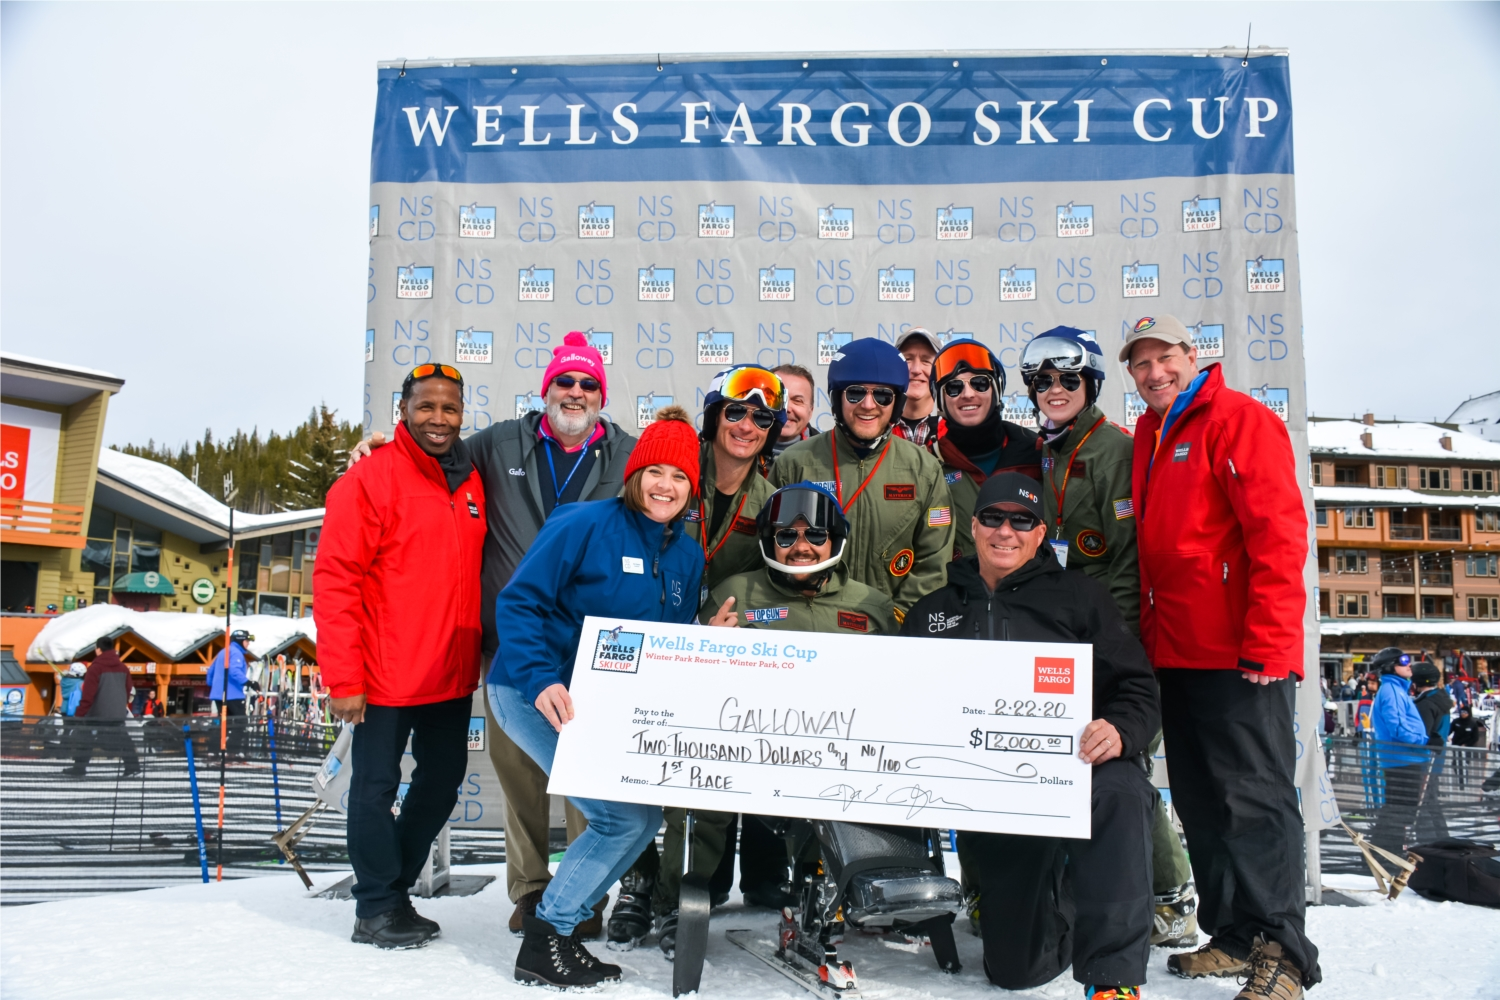 Galloway proudly sponsors and participates in the Wells Fargo Ski Cup each year, which is the National Center for Disabled Sports' largest annual fundraiser.